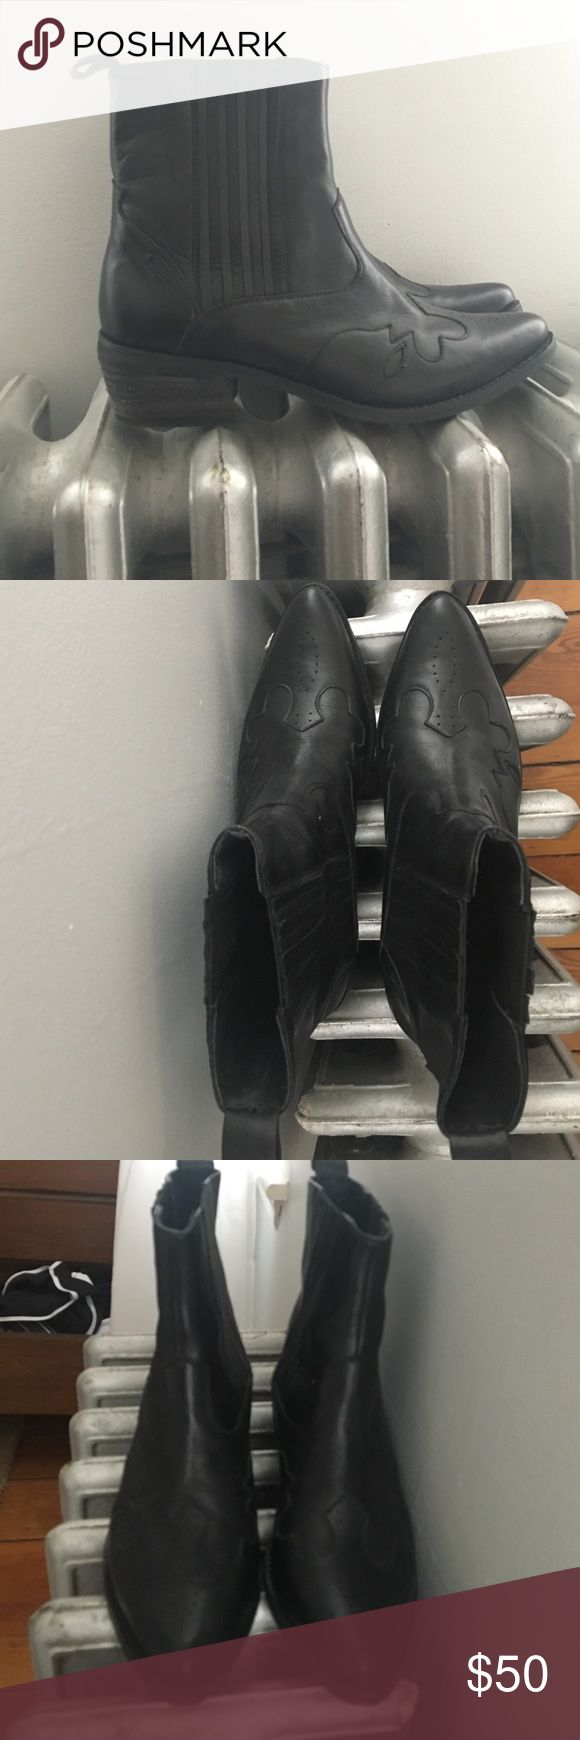 Black leather ankle boots Urban Outfitters black leather western ankle boots worn once! Excellent condition. Size 8 Urban Outfitters Shoes Ankle Boots & Booties